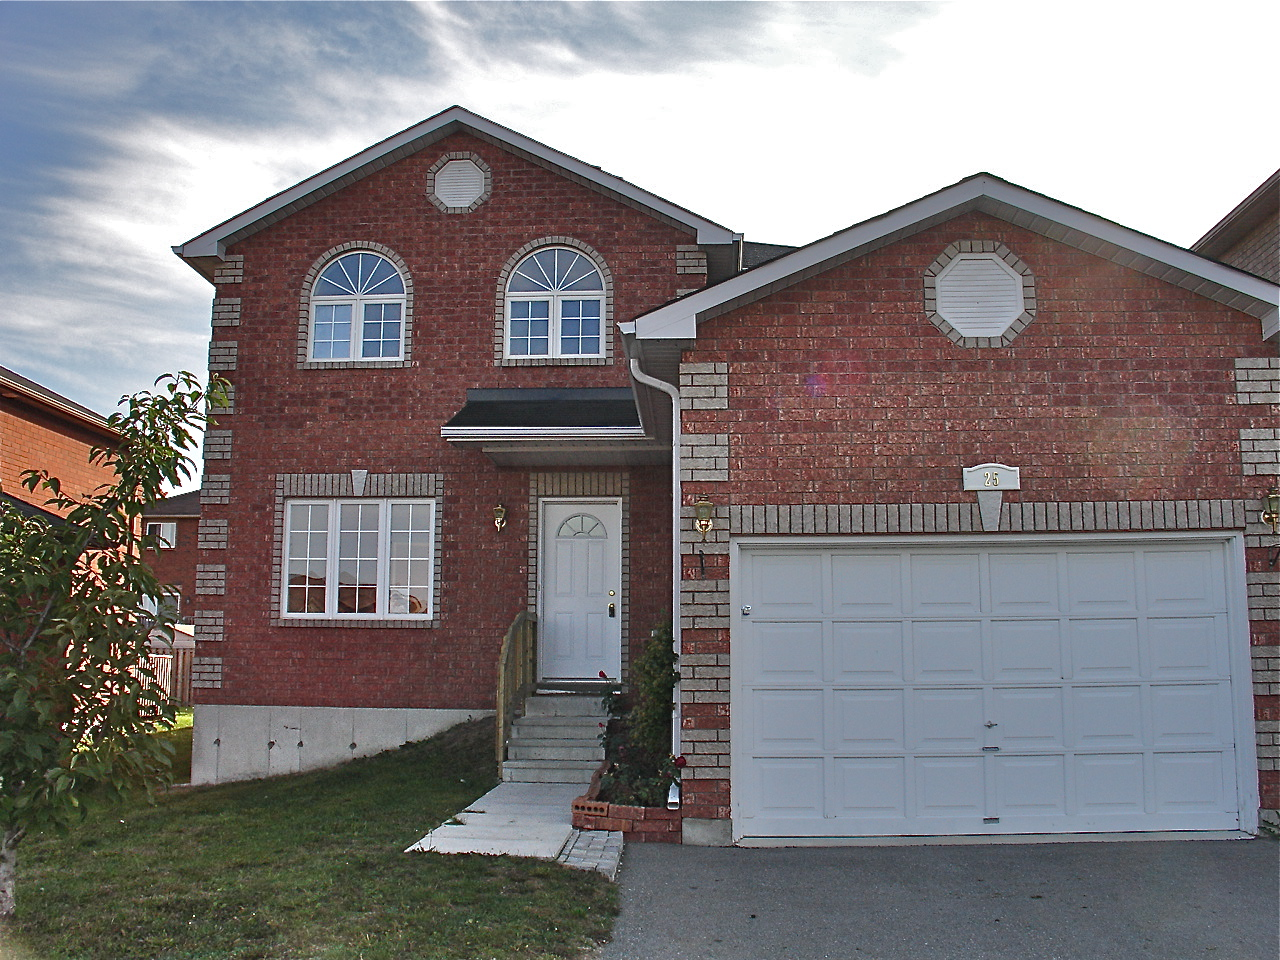 2 story home for sale in barrie the barrie real estate blog for Two story houses for sale